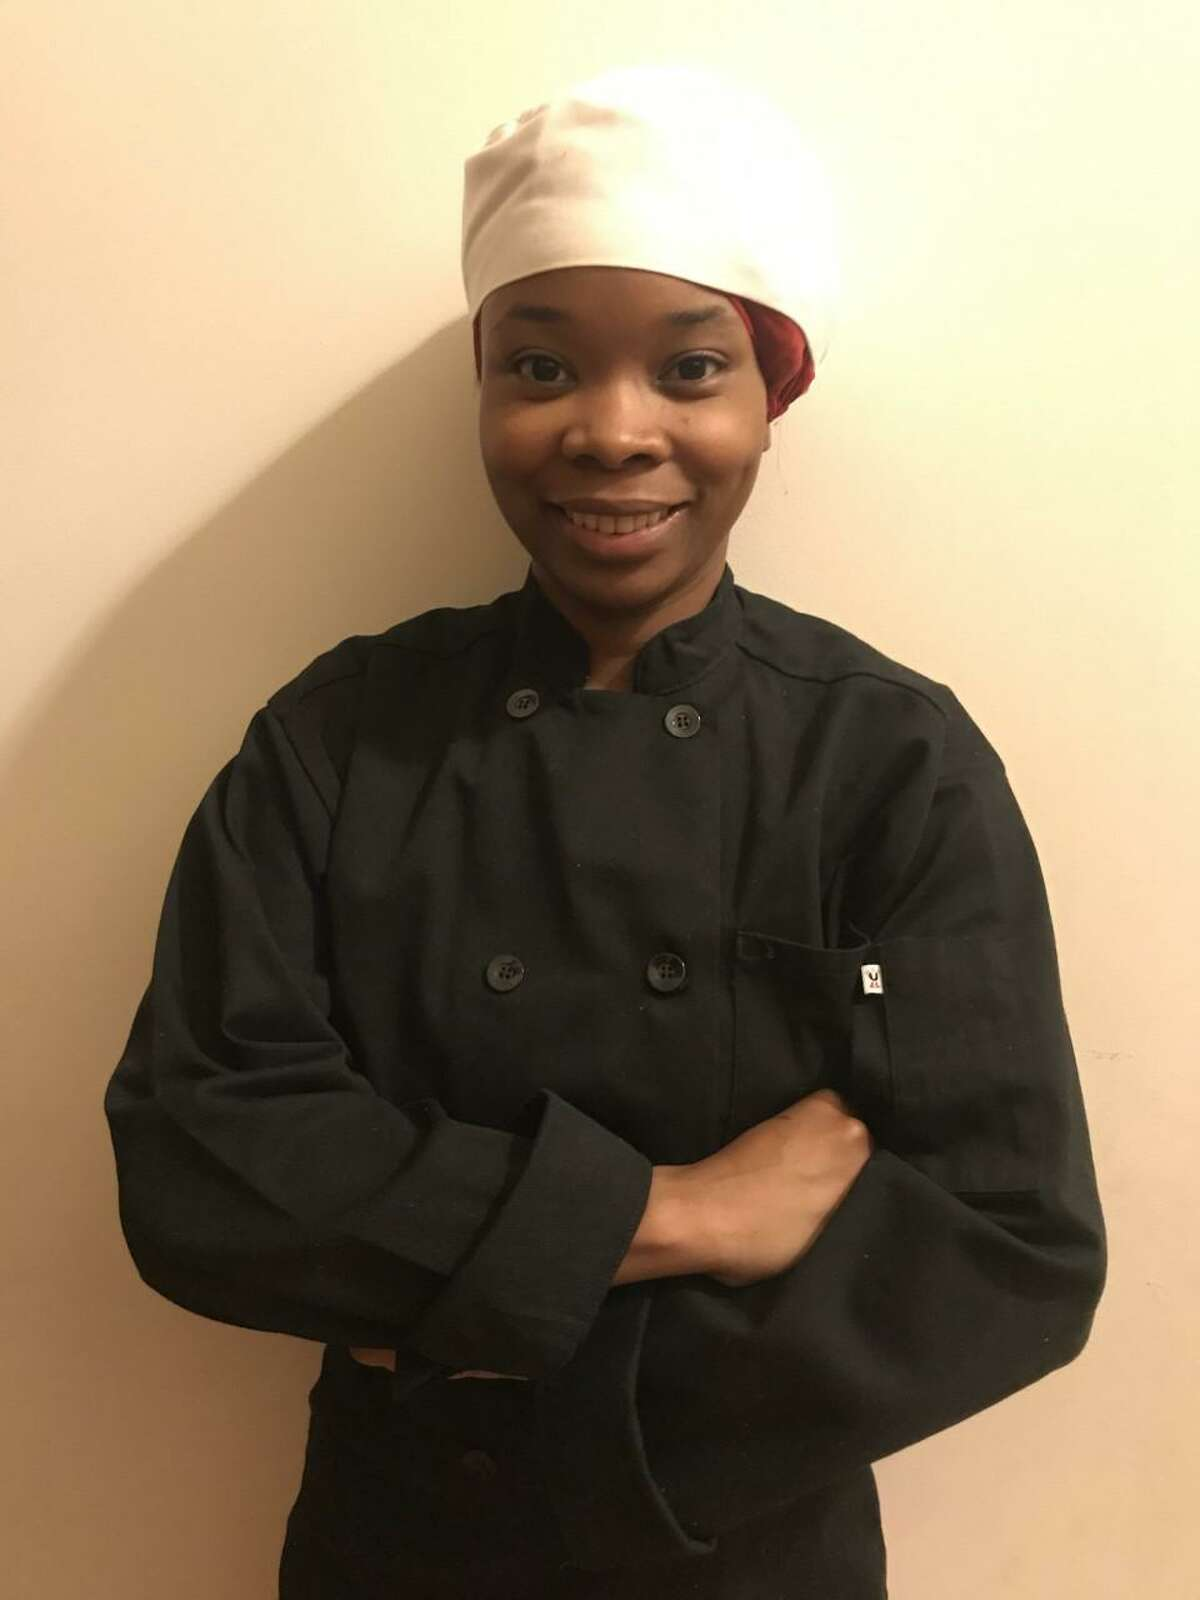 Plumb Memorial Library's Children Department will be offering a creative cooking class with Chef Whitney.